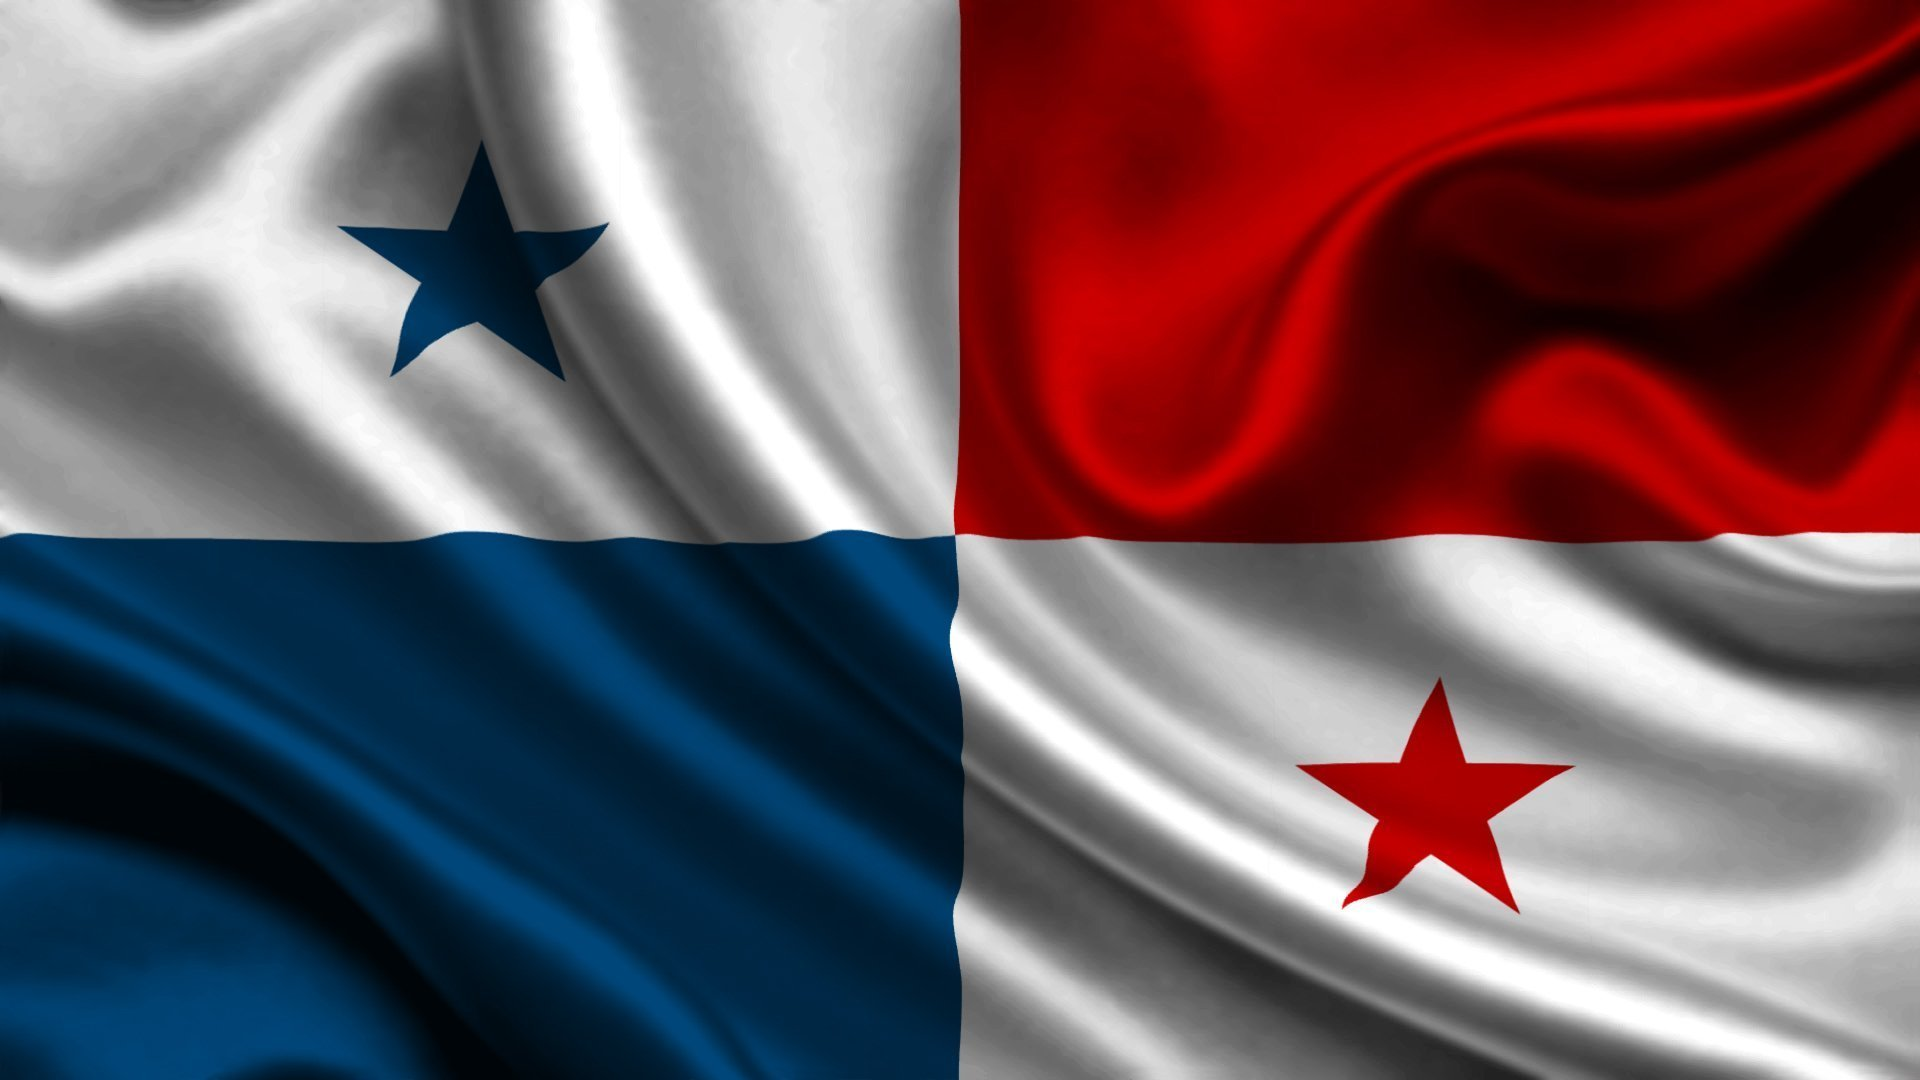 Panama Flag Wallpaper   WallGiftWatchesCO 1920x1080